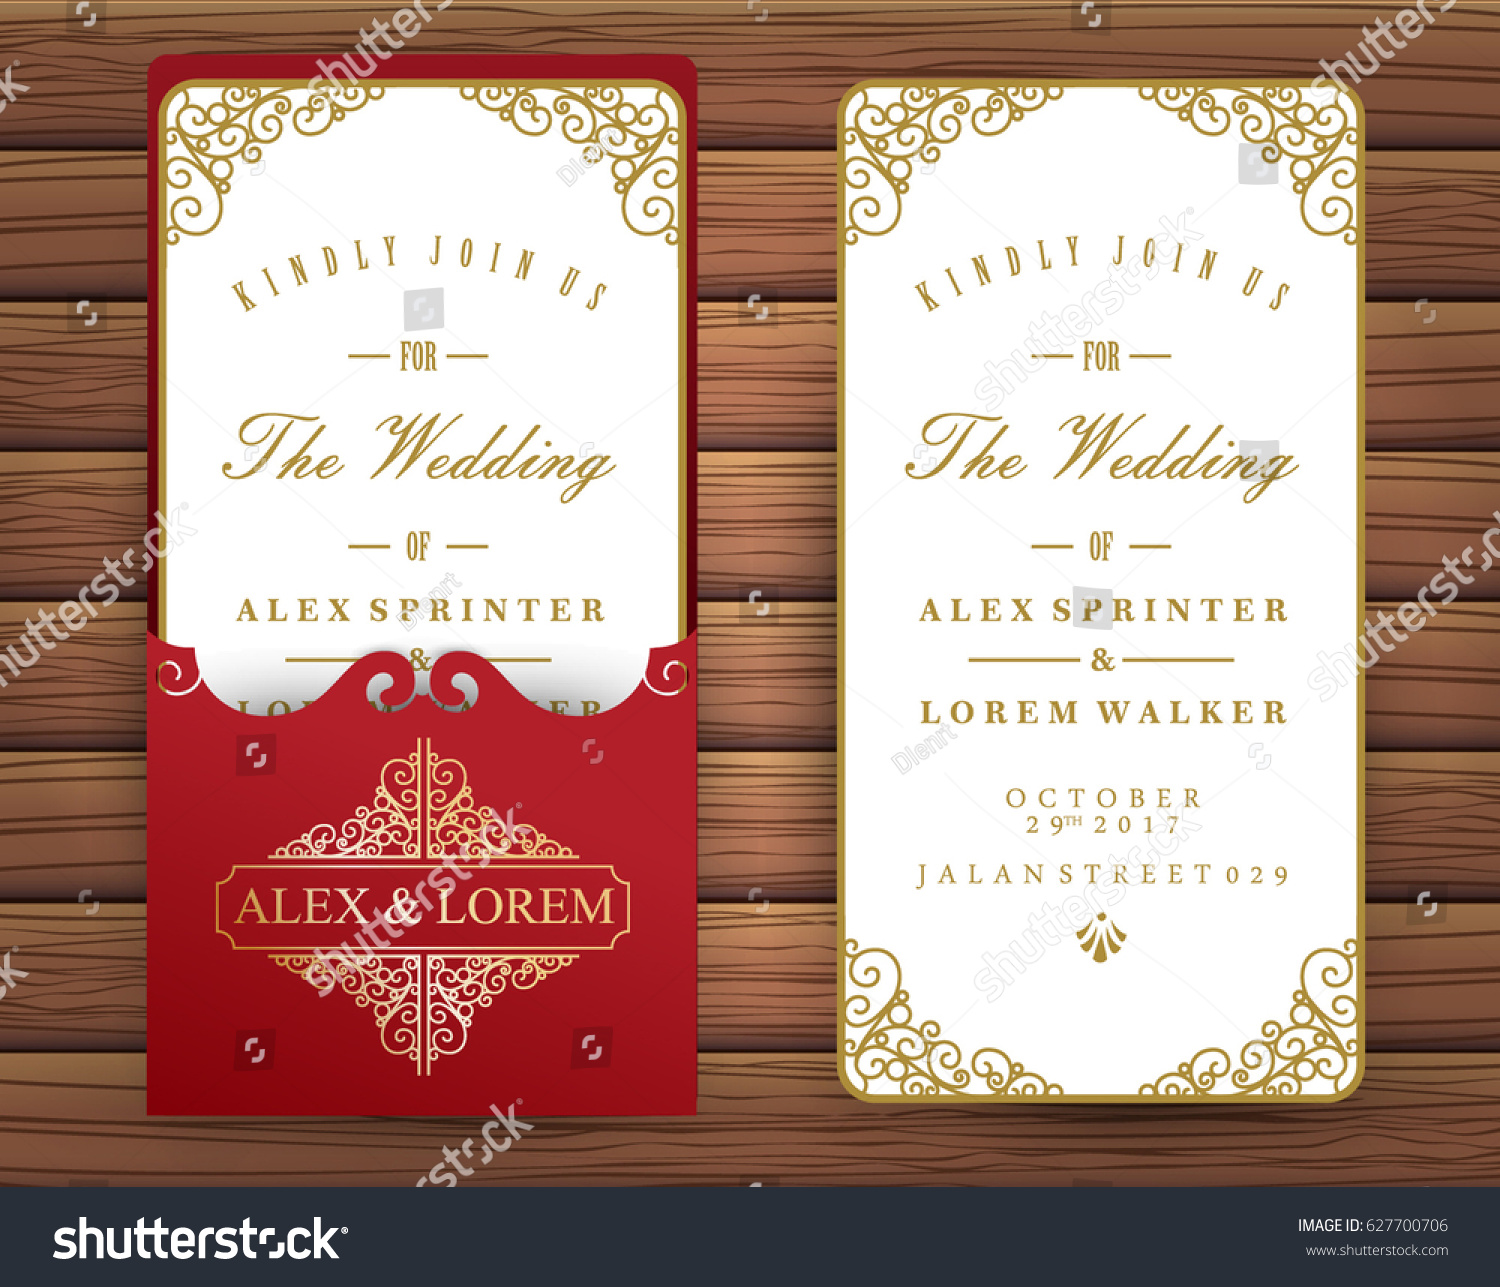 Red Ruby Wedding Invitation Card Stock Vector 627700706 - Shutterstock